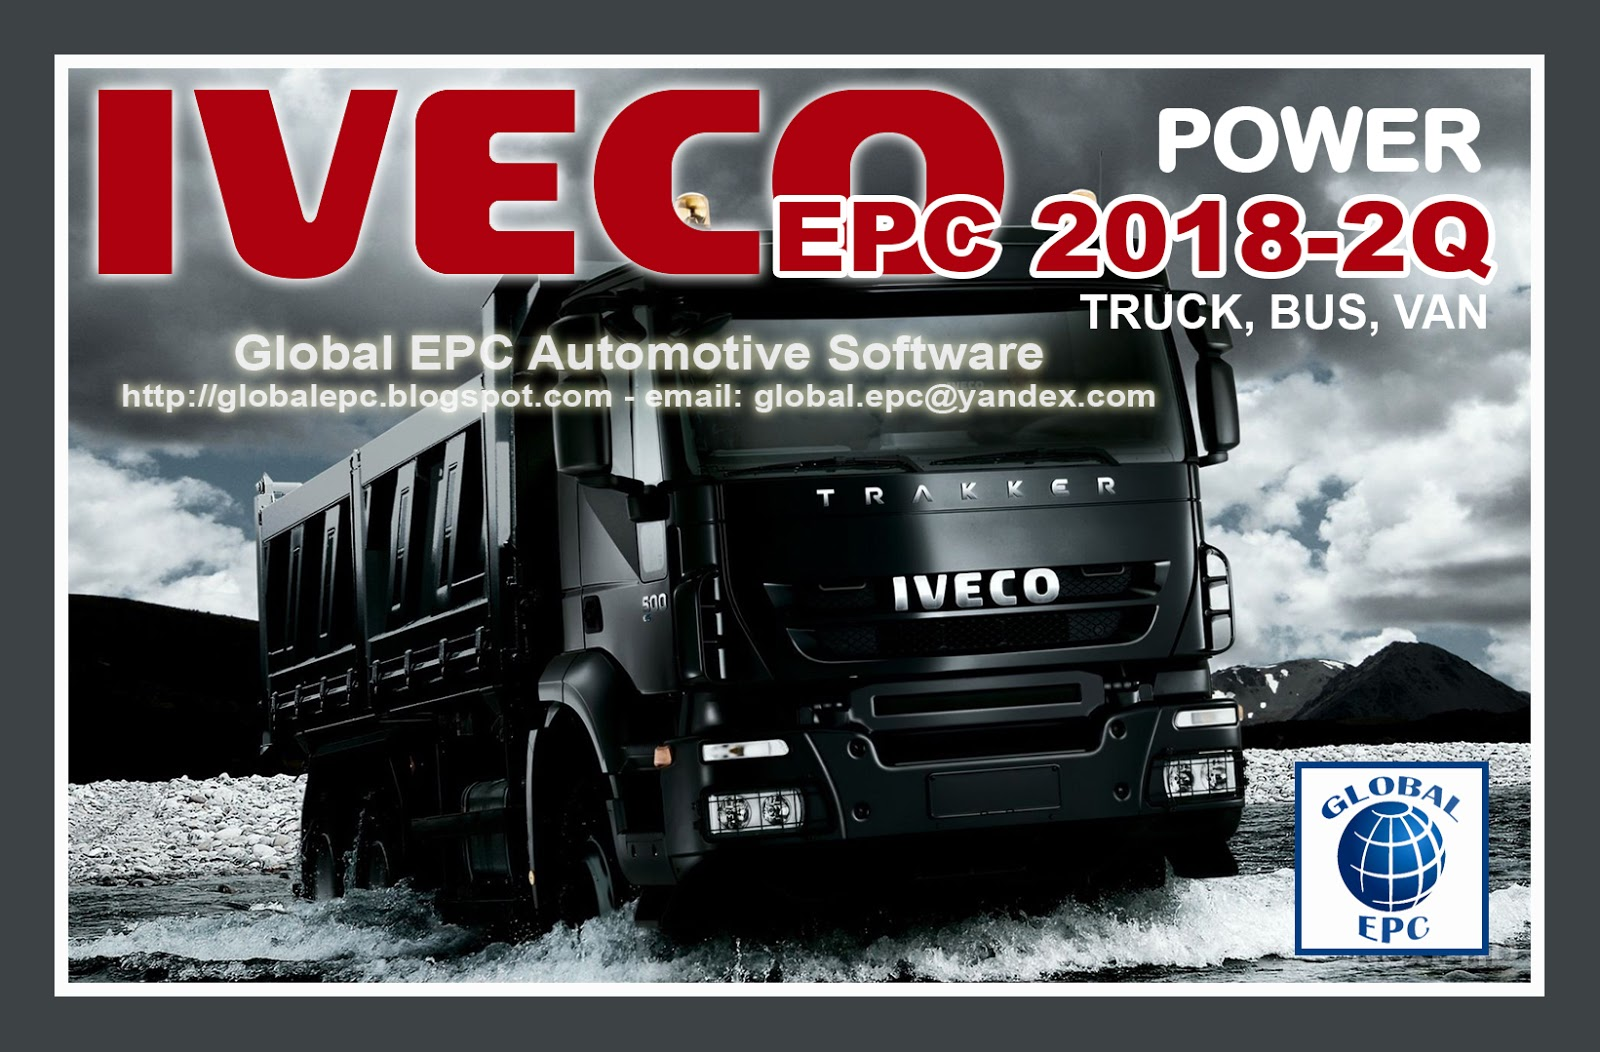 IVECO POWER EPC 07.2018 PRE-ACTIVATED